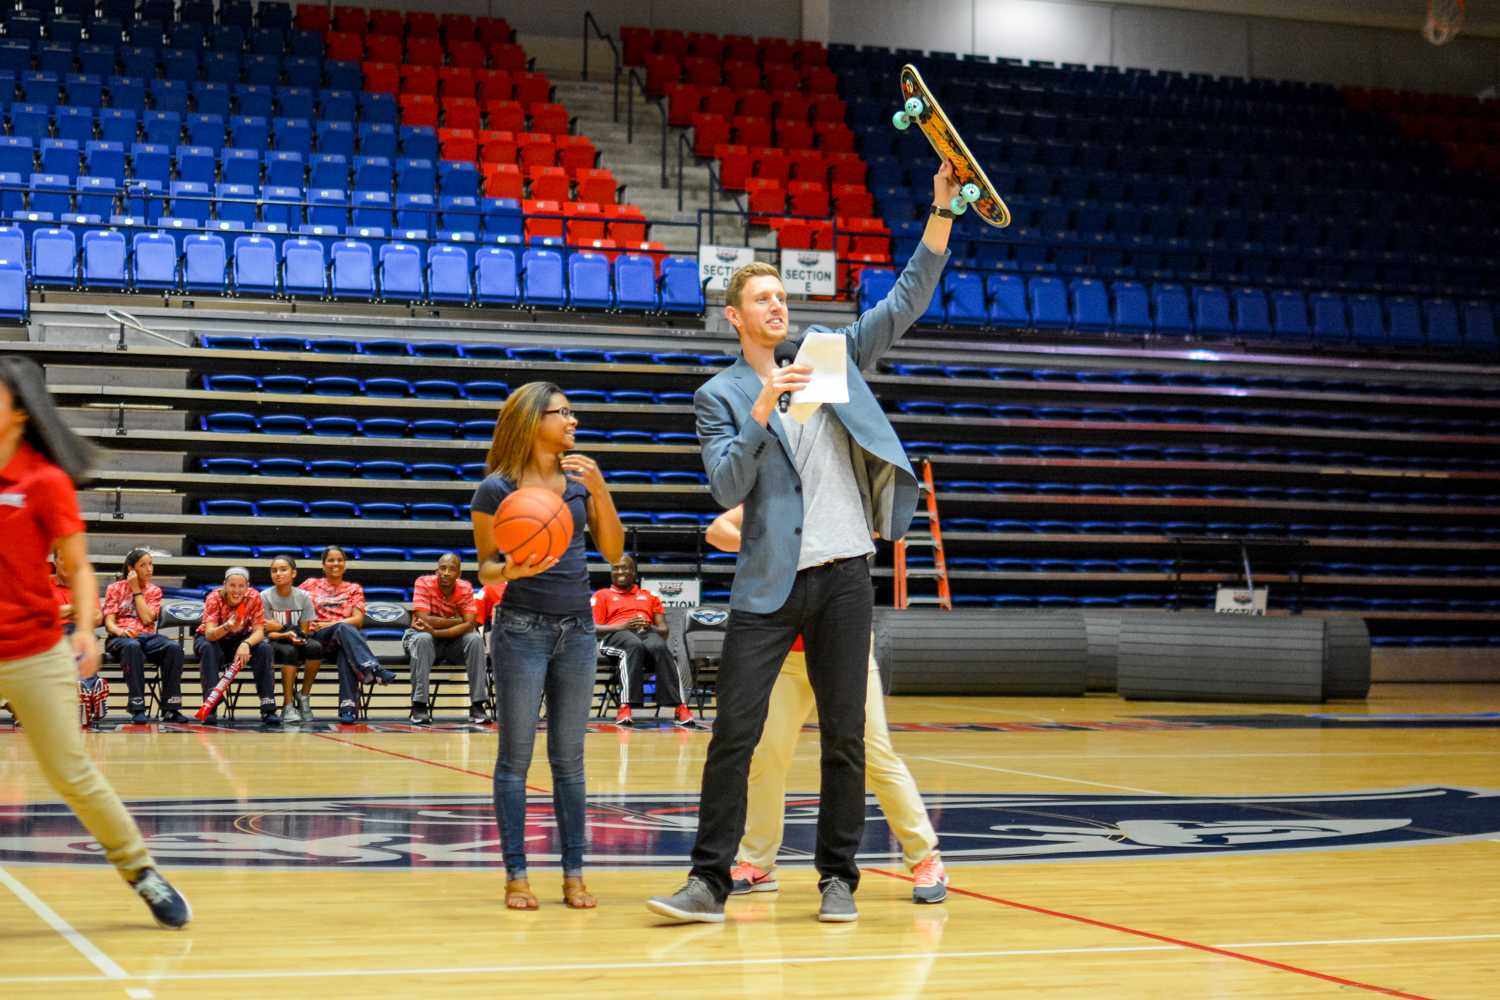 The half-court free throw contestant wins a consolation prize in form of a skateboard after missing the shot. Emily Creighton | Features Editor